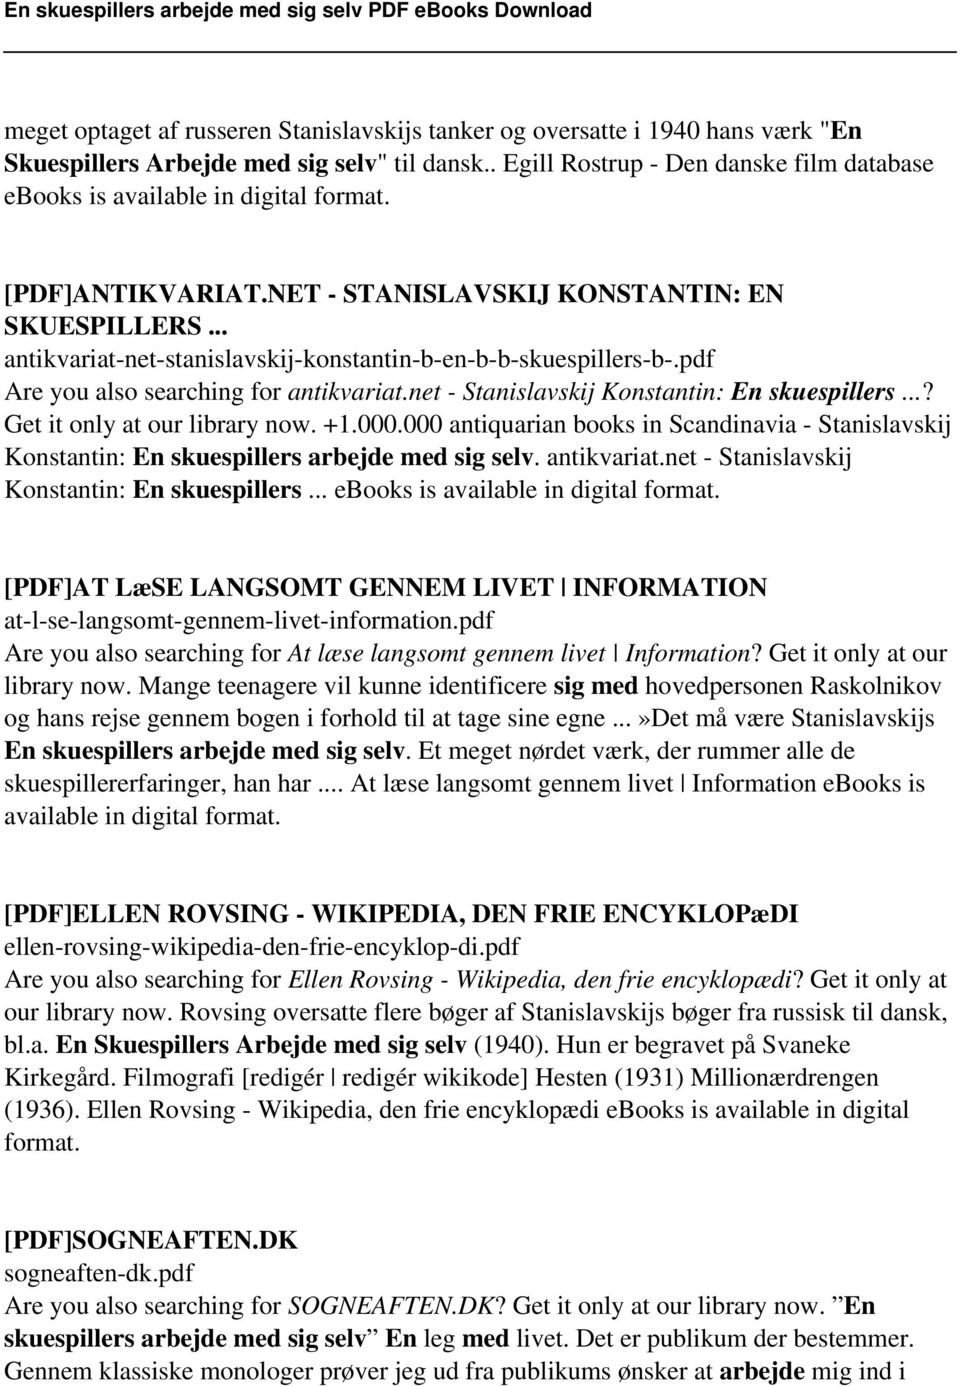 .. antikvariat-net-stanislavskij-konstantin-b-en-b-b-skuespillers-b-.pdf Are you also searching for antikvariat.net - Stanislavskij Konstantin: En skuespillers...? Get it only at our library now. +1.